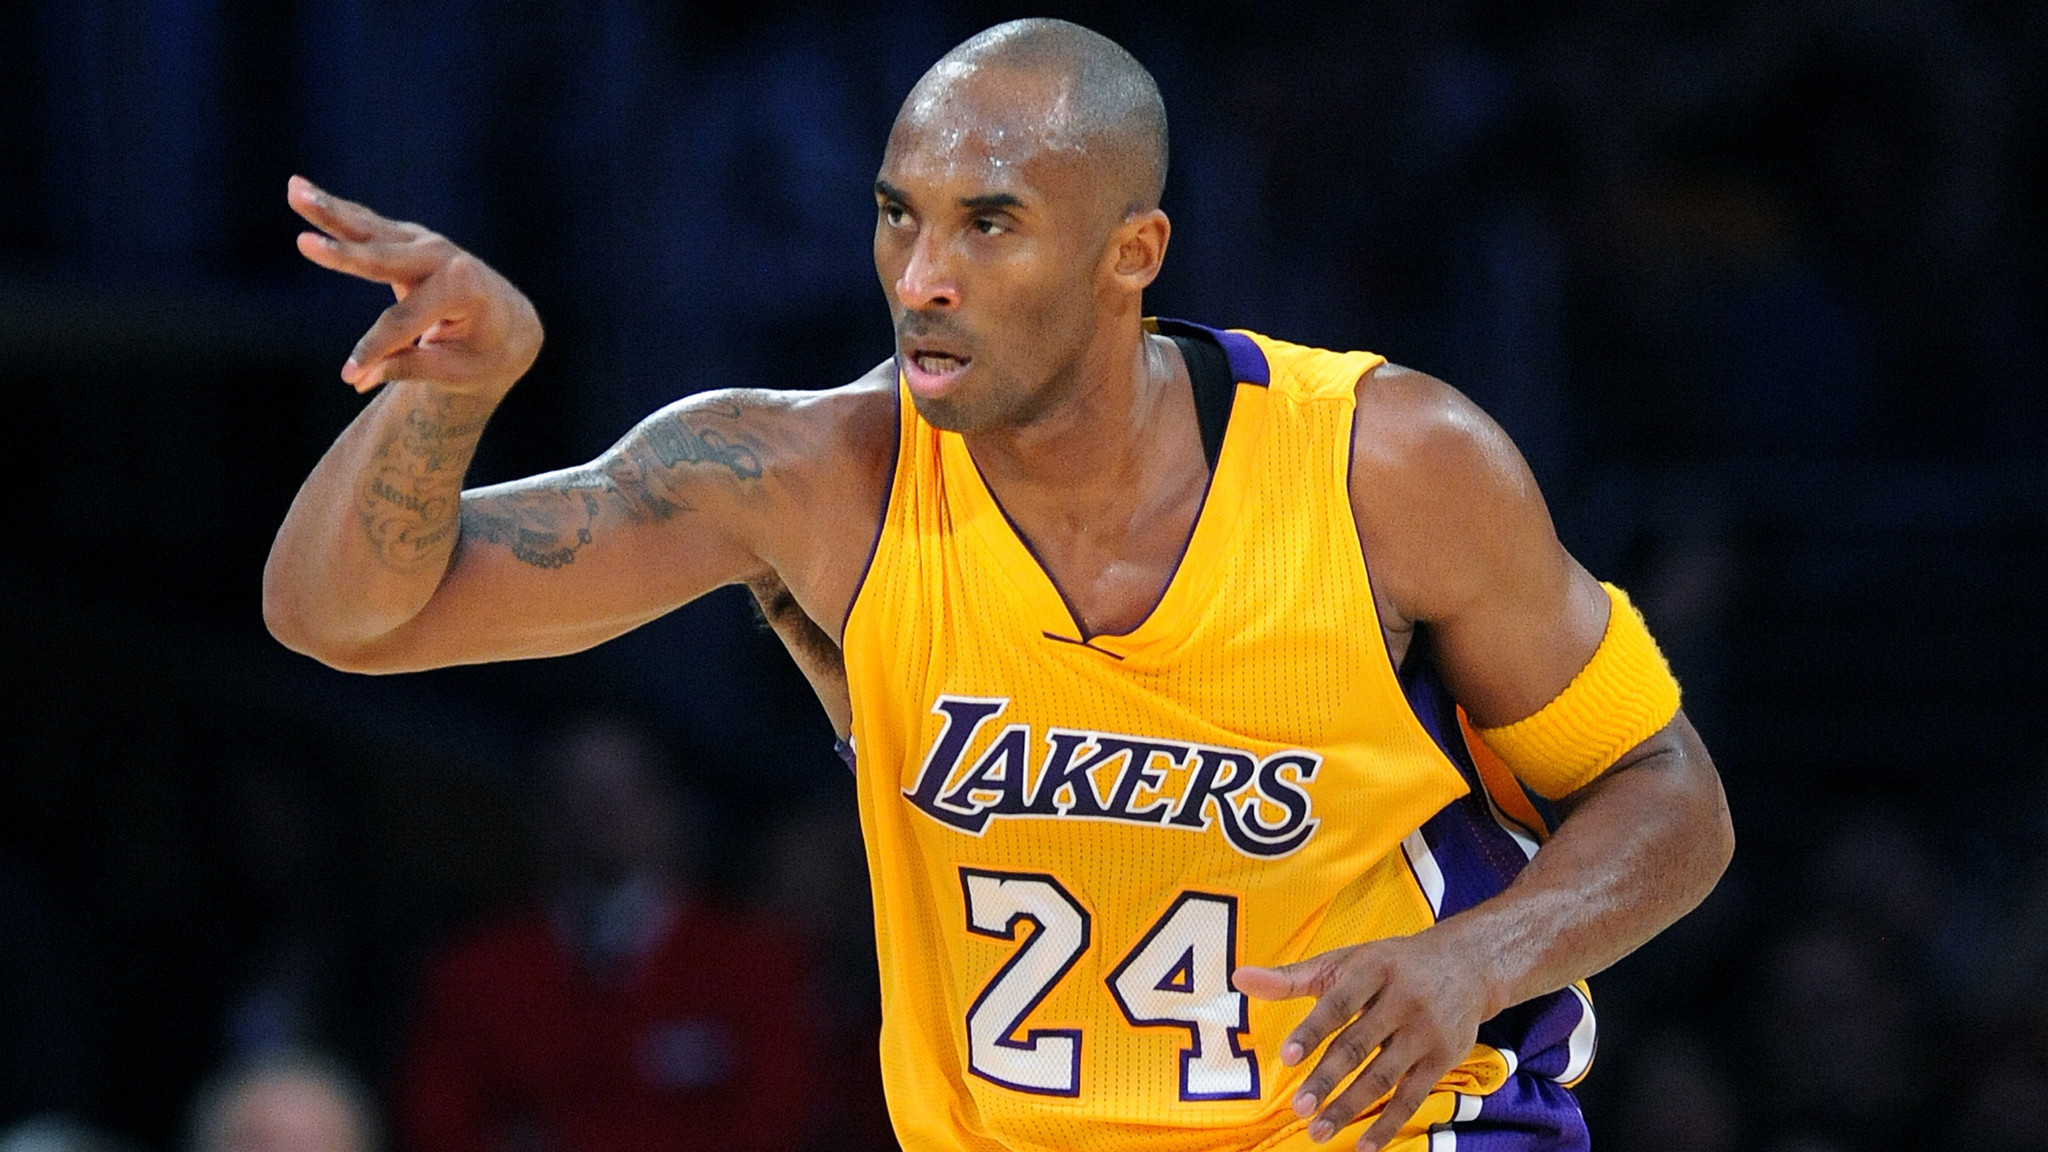 http://www.trbimg.com/img-565b989f/turbine/la-sp-ln-kobe-bryant-announces-retirement-after-season-20151129